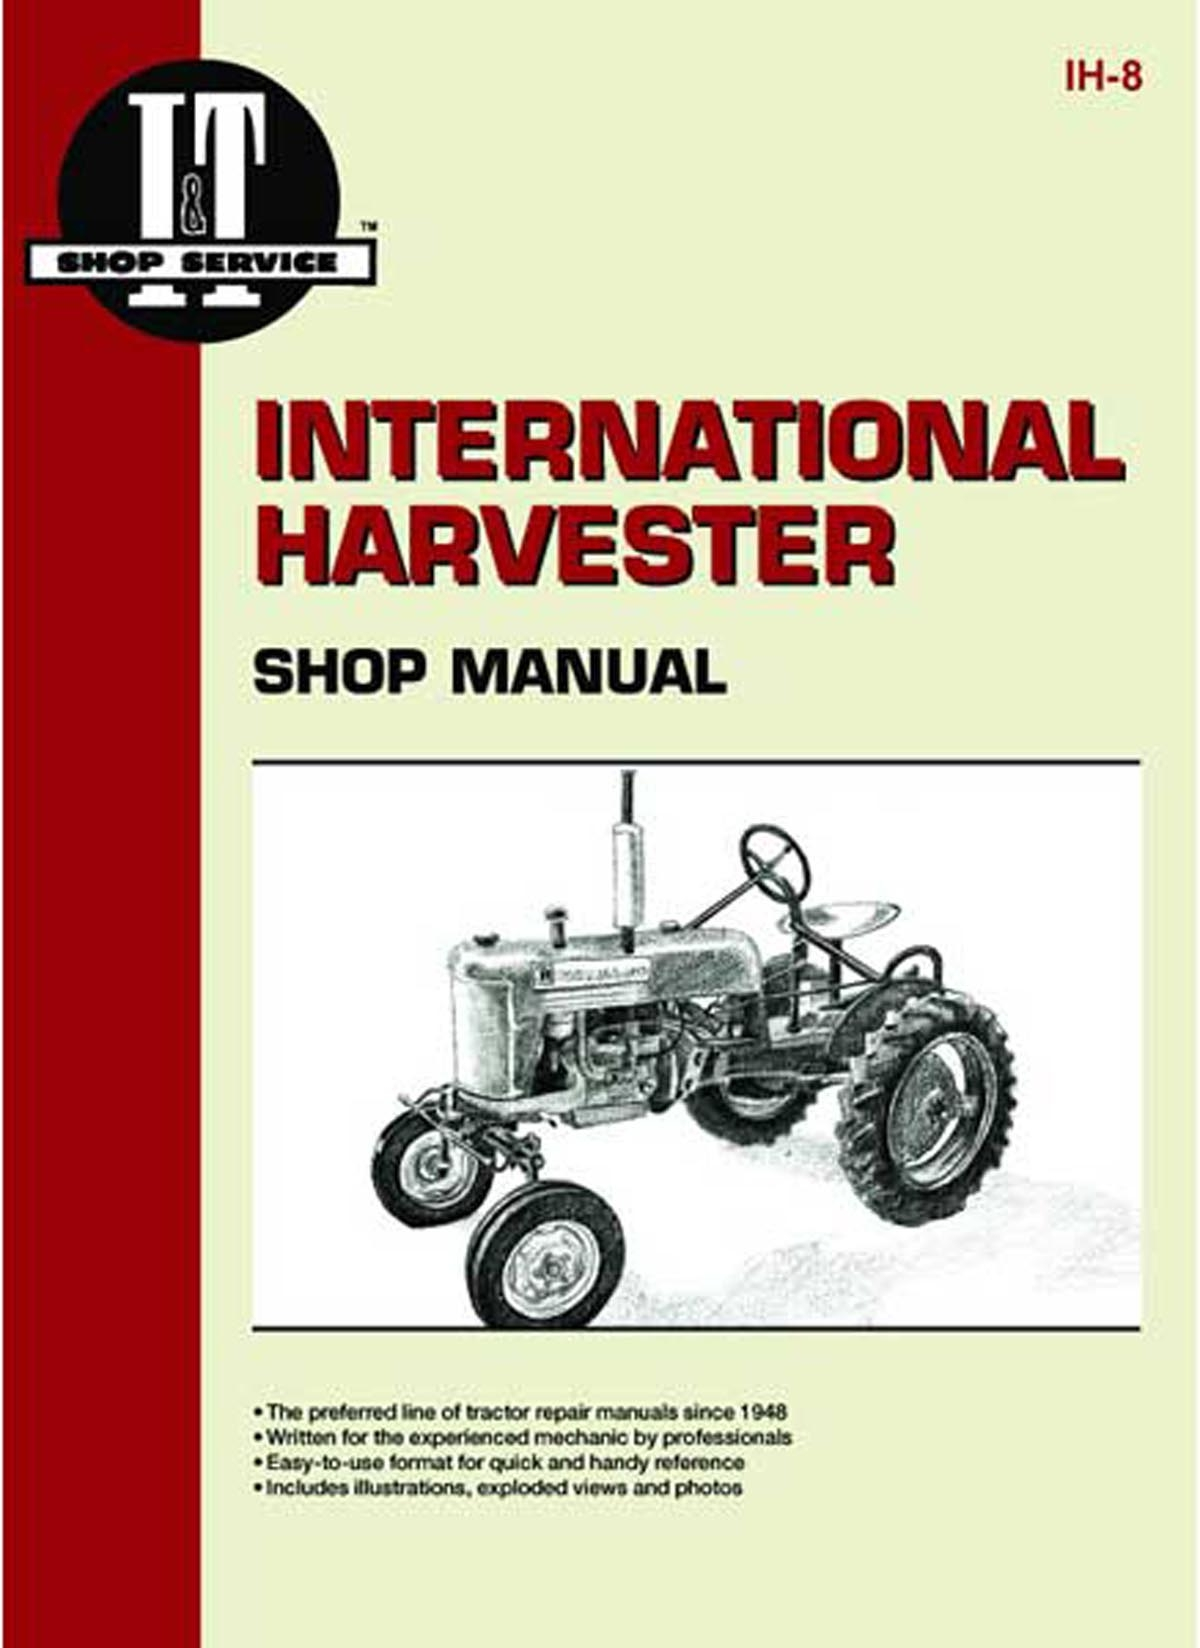 IH8 i & t shop service manual farmall a, b, c, cub, h, m, m ta, md farmall super c wiring harness at n-0.co